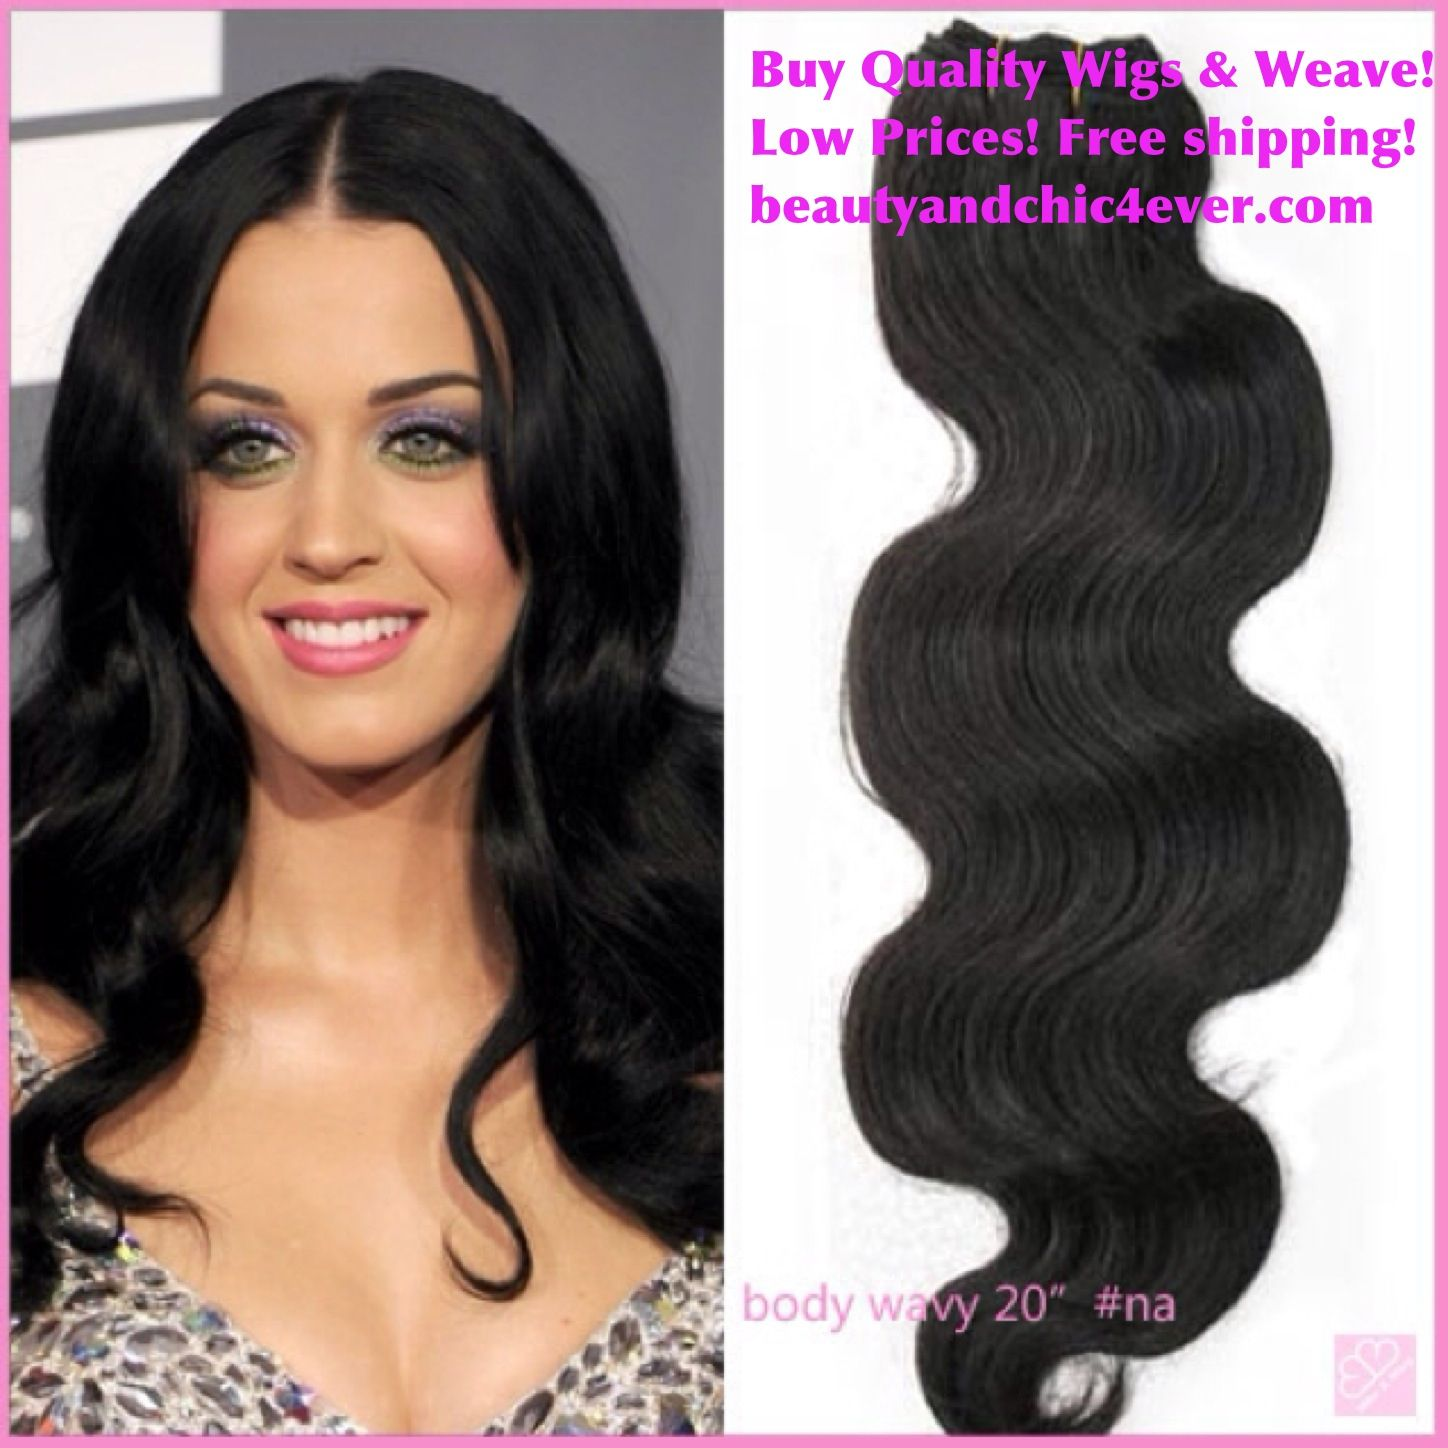 Buy High Quality Wigs Hair Extensions Low Prices Free Shipping